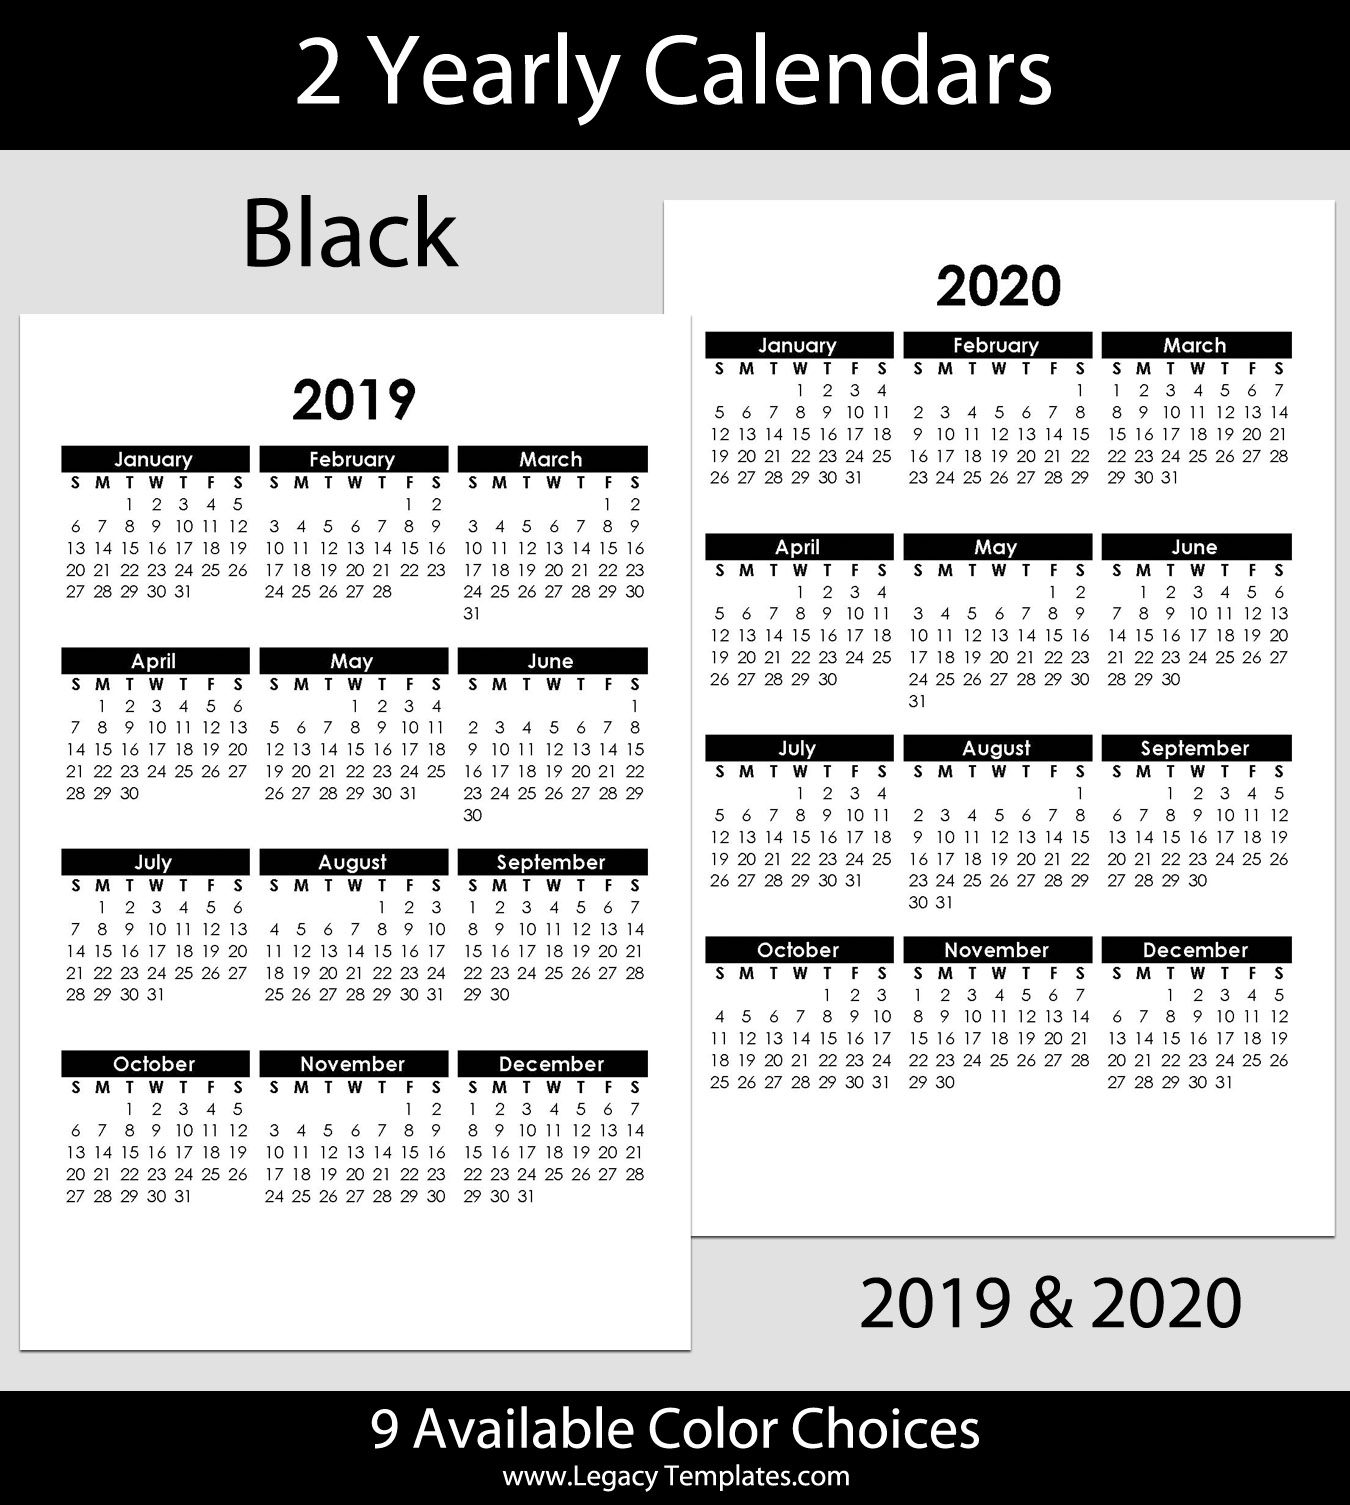 2019 & 2020 Yearly Calendar - 5.5 X 8.5 | Legacy Templates in 2021-2021 Two Year Planner: 2-Year